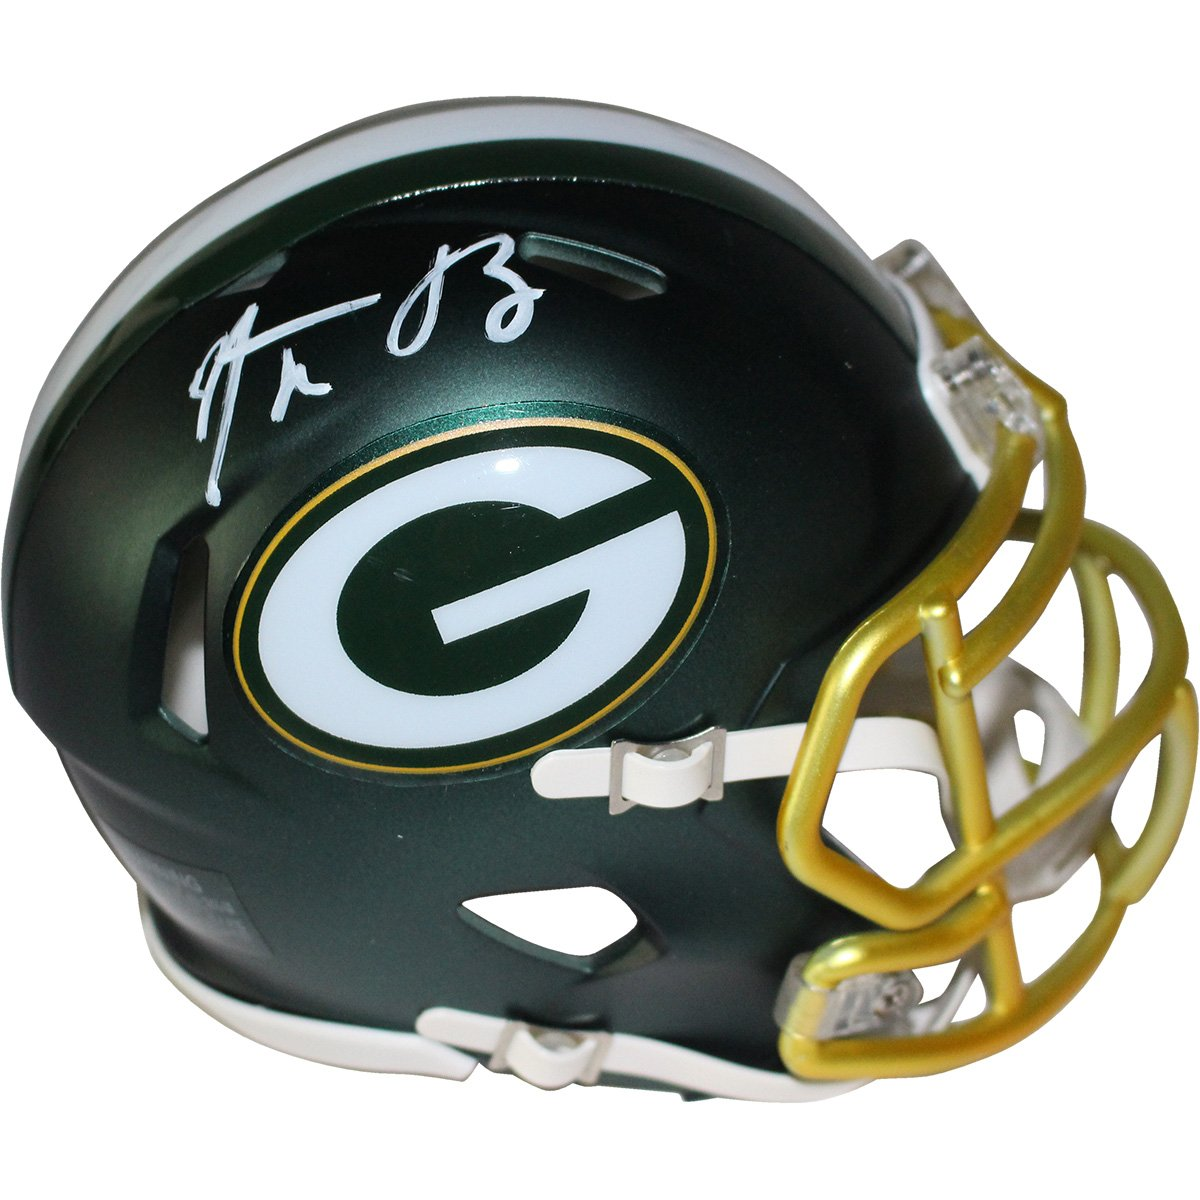 Image of Aaron Rodgers Signed Green Bay Packers Blaze Mini Helmet